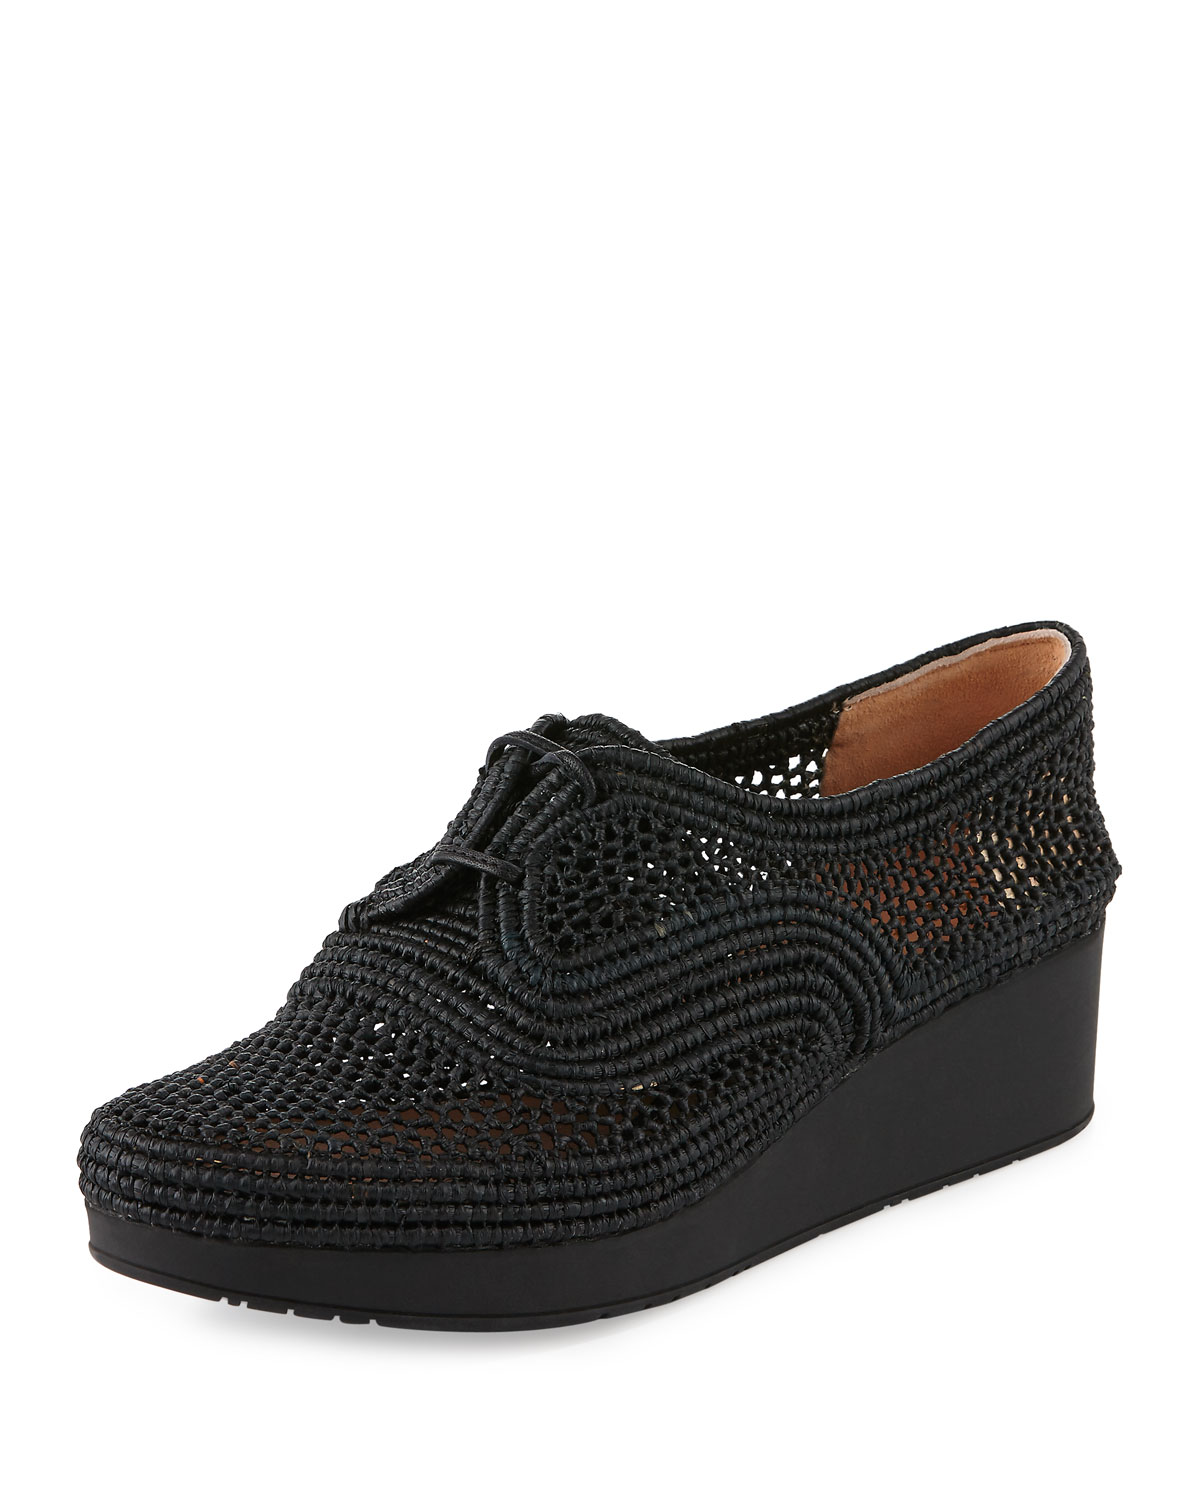 Robert Clergerie Vicolek Raffia Sneakers buy cheap huge surprise jM88w3V